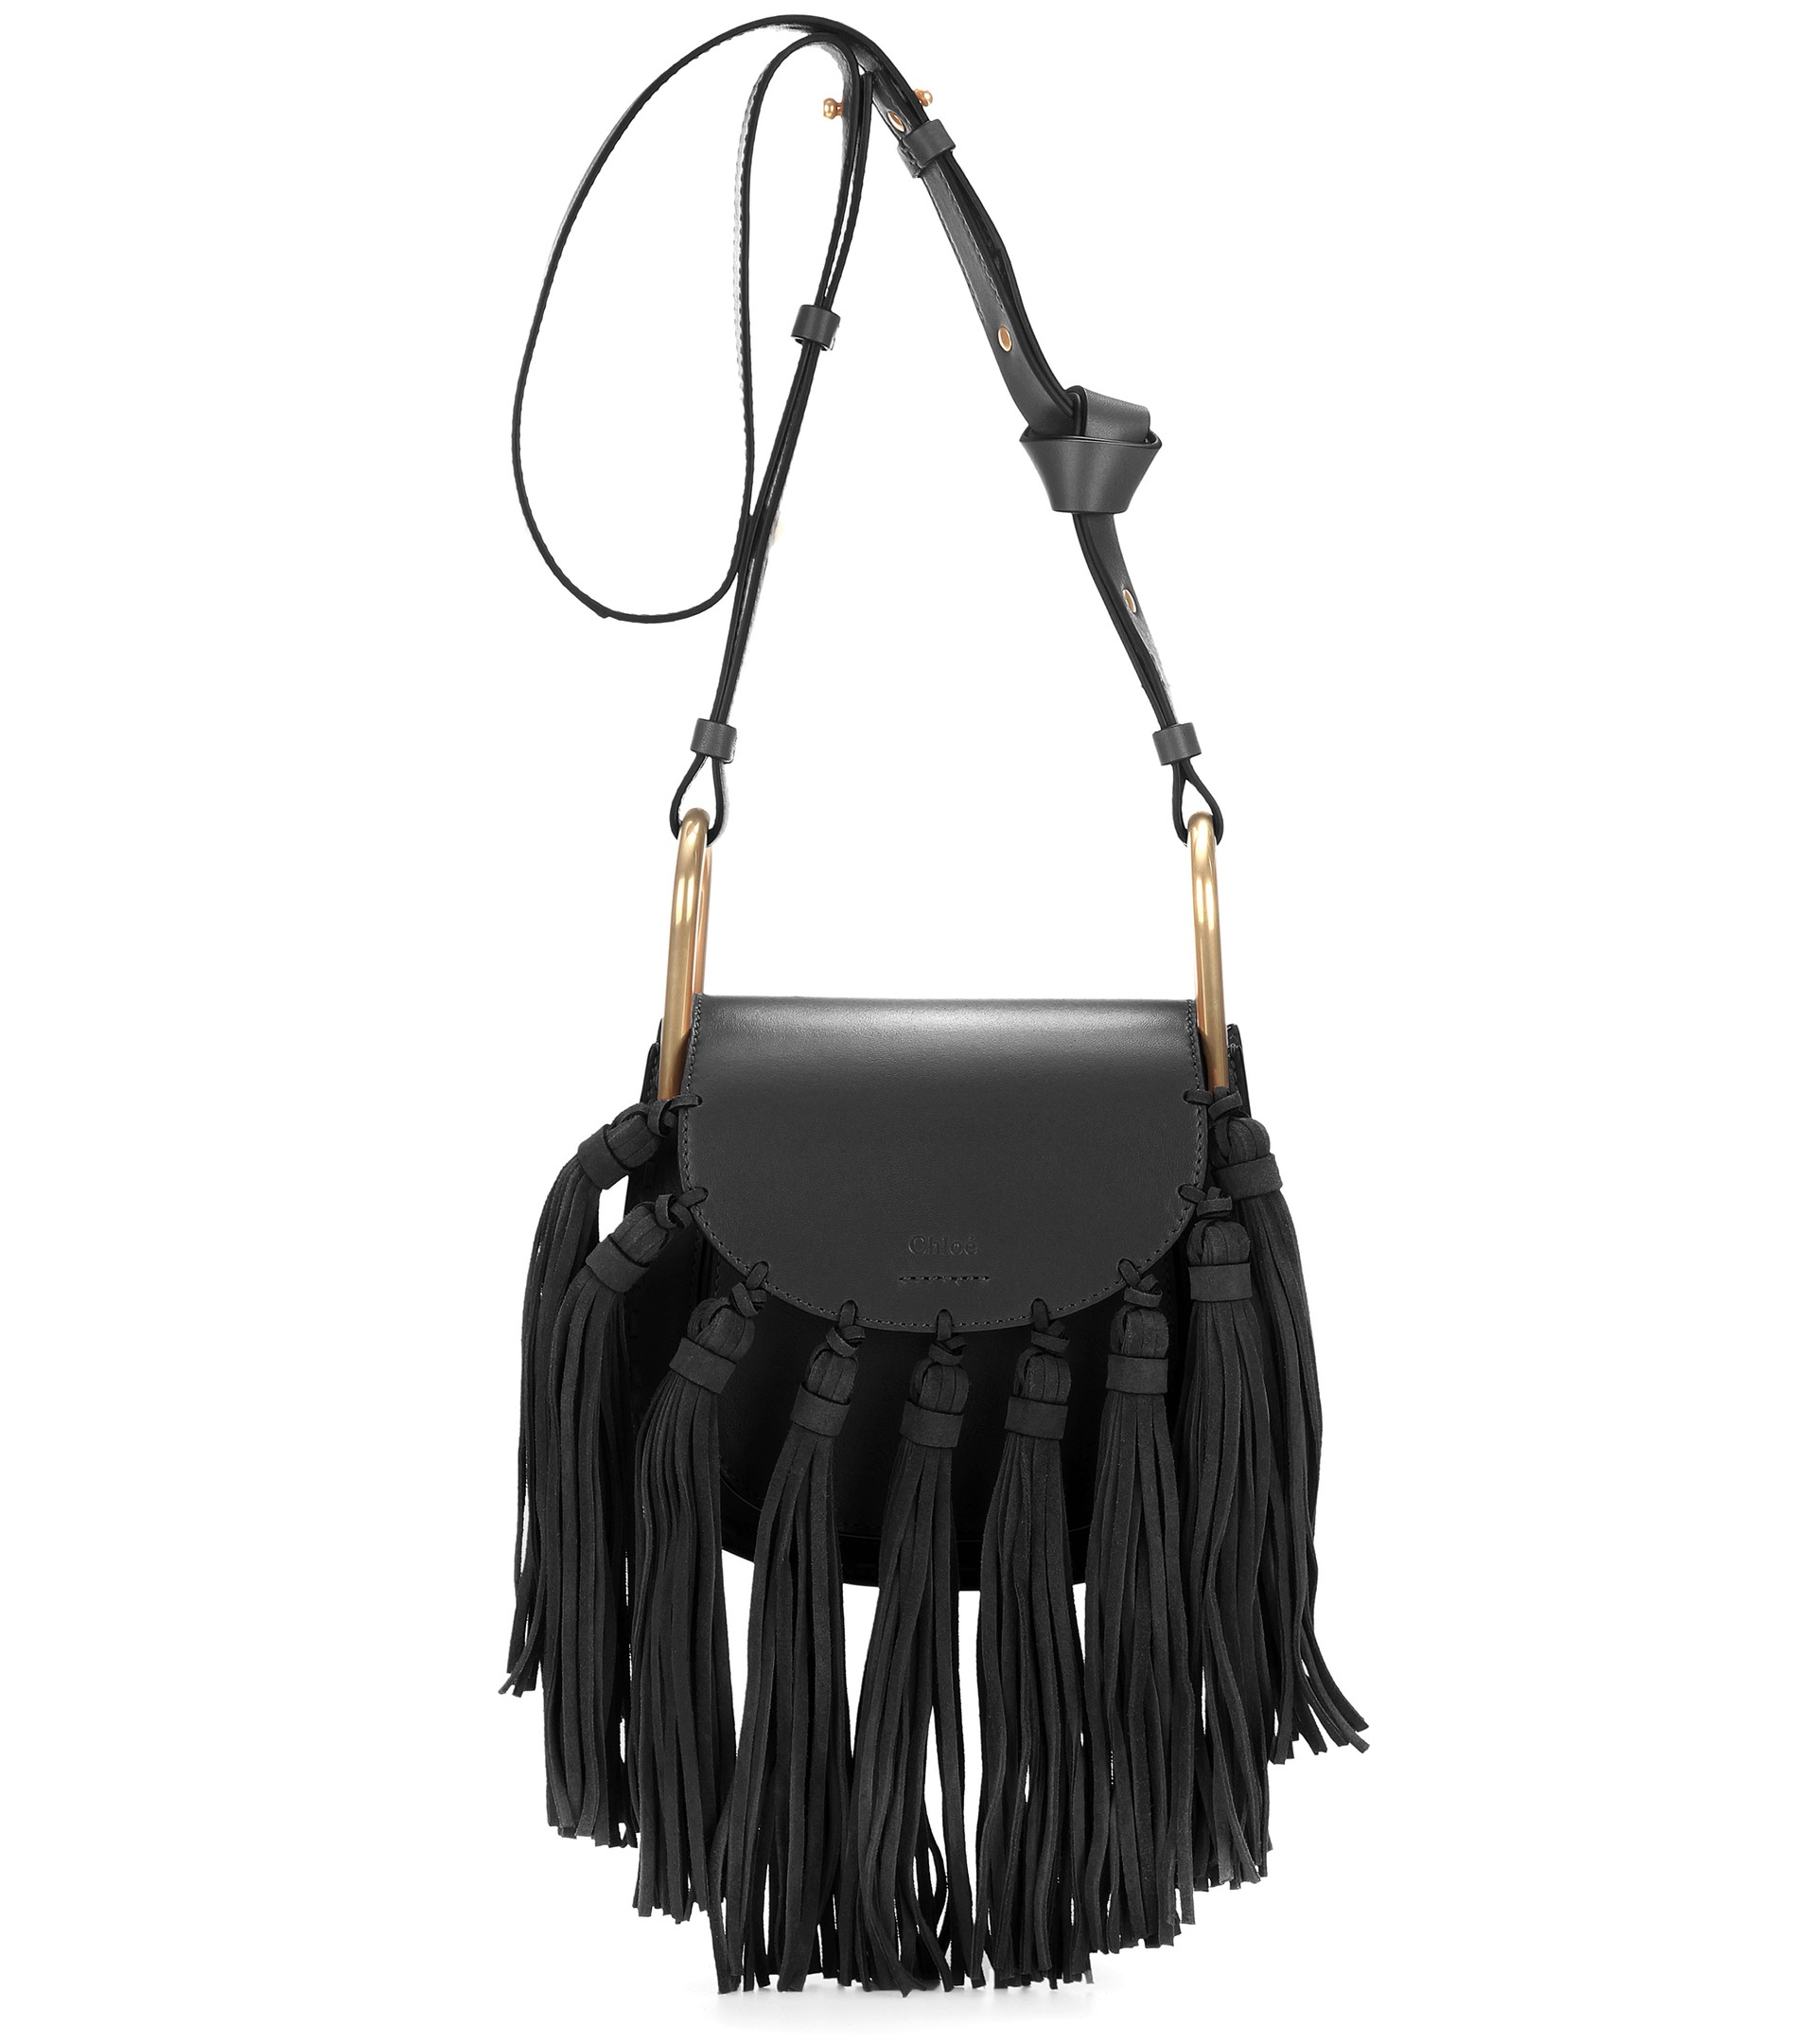 chloe knockoffs - chloe black suede braided mini hudson bag, replica chloe bag